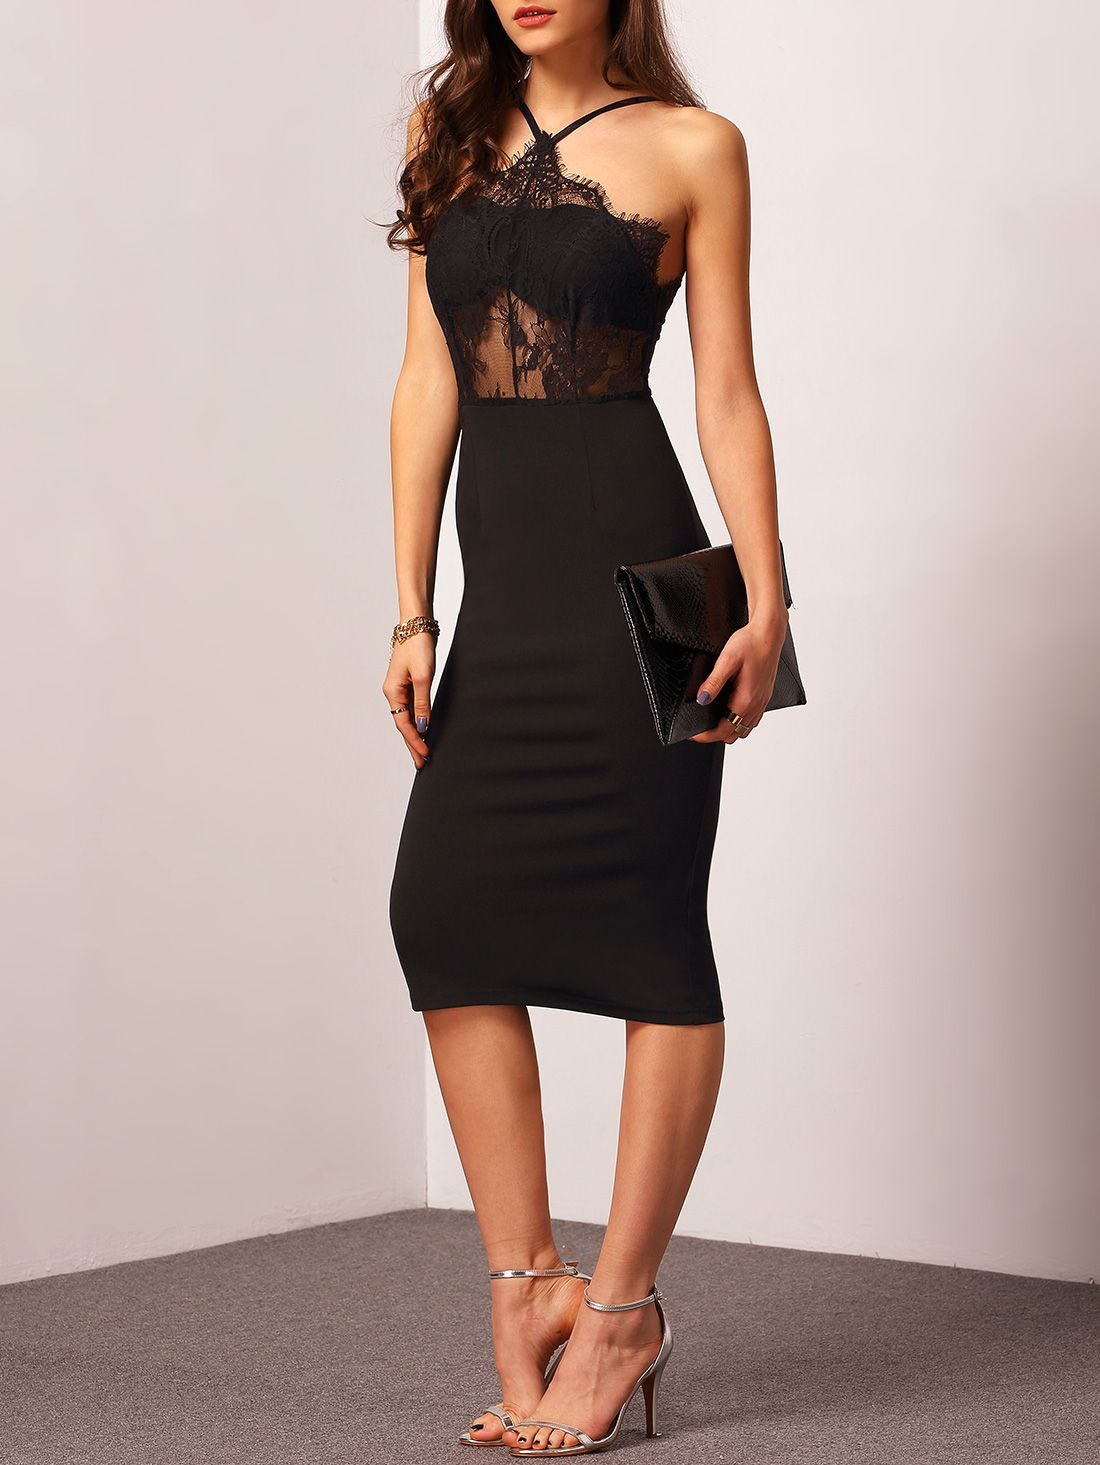 Shop Black Halter With Lace Dress Online Shein Offers Black Halter With Lace Dress Amp More To Fit Your Fashionable Needs Bodycon Dress Lace Dress Fashion [ 1465 x 1100 Pixel ]